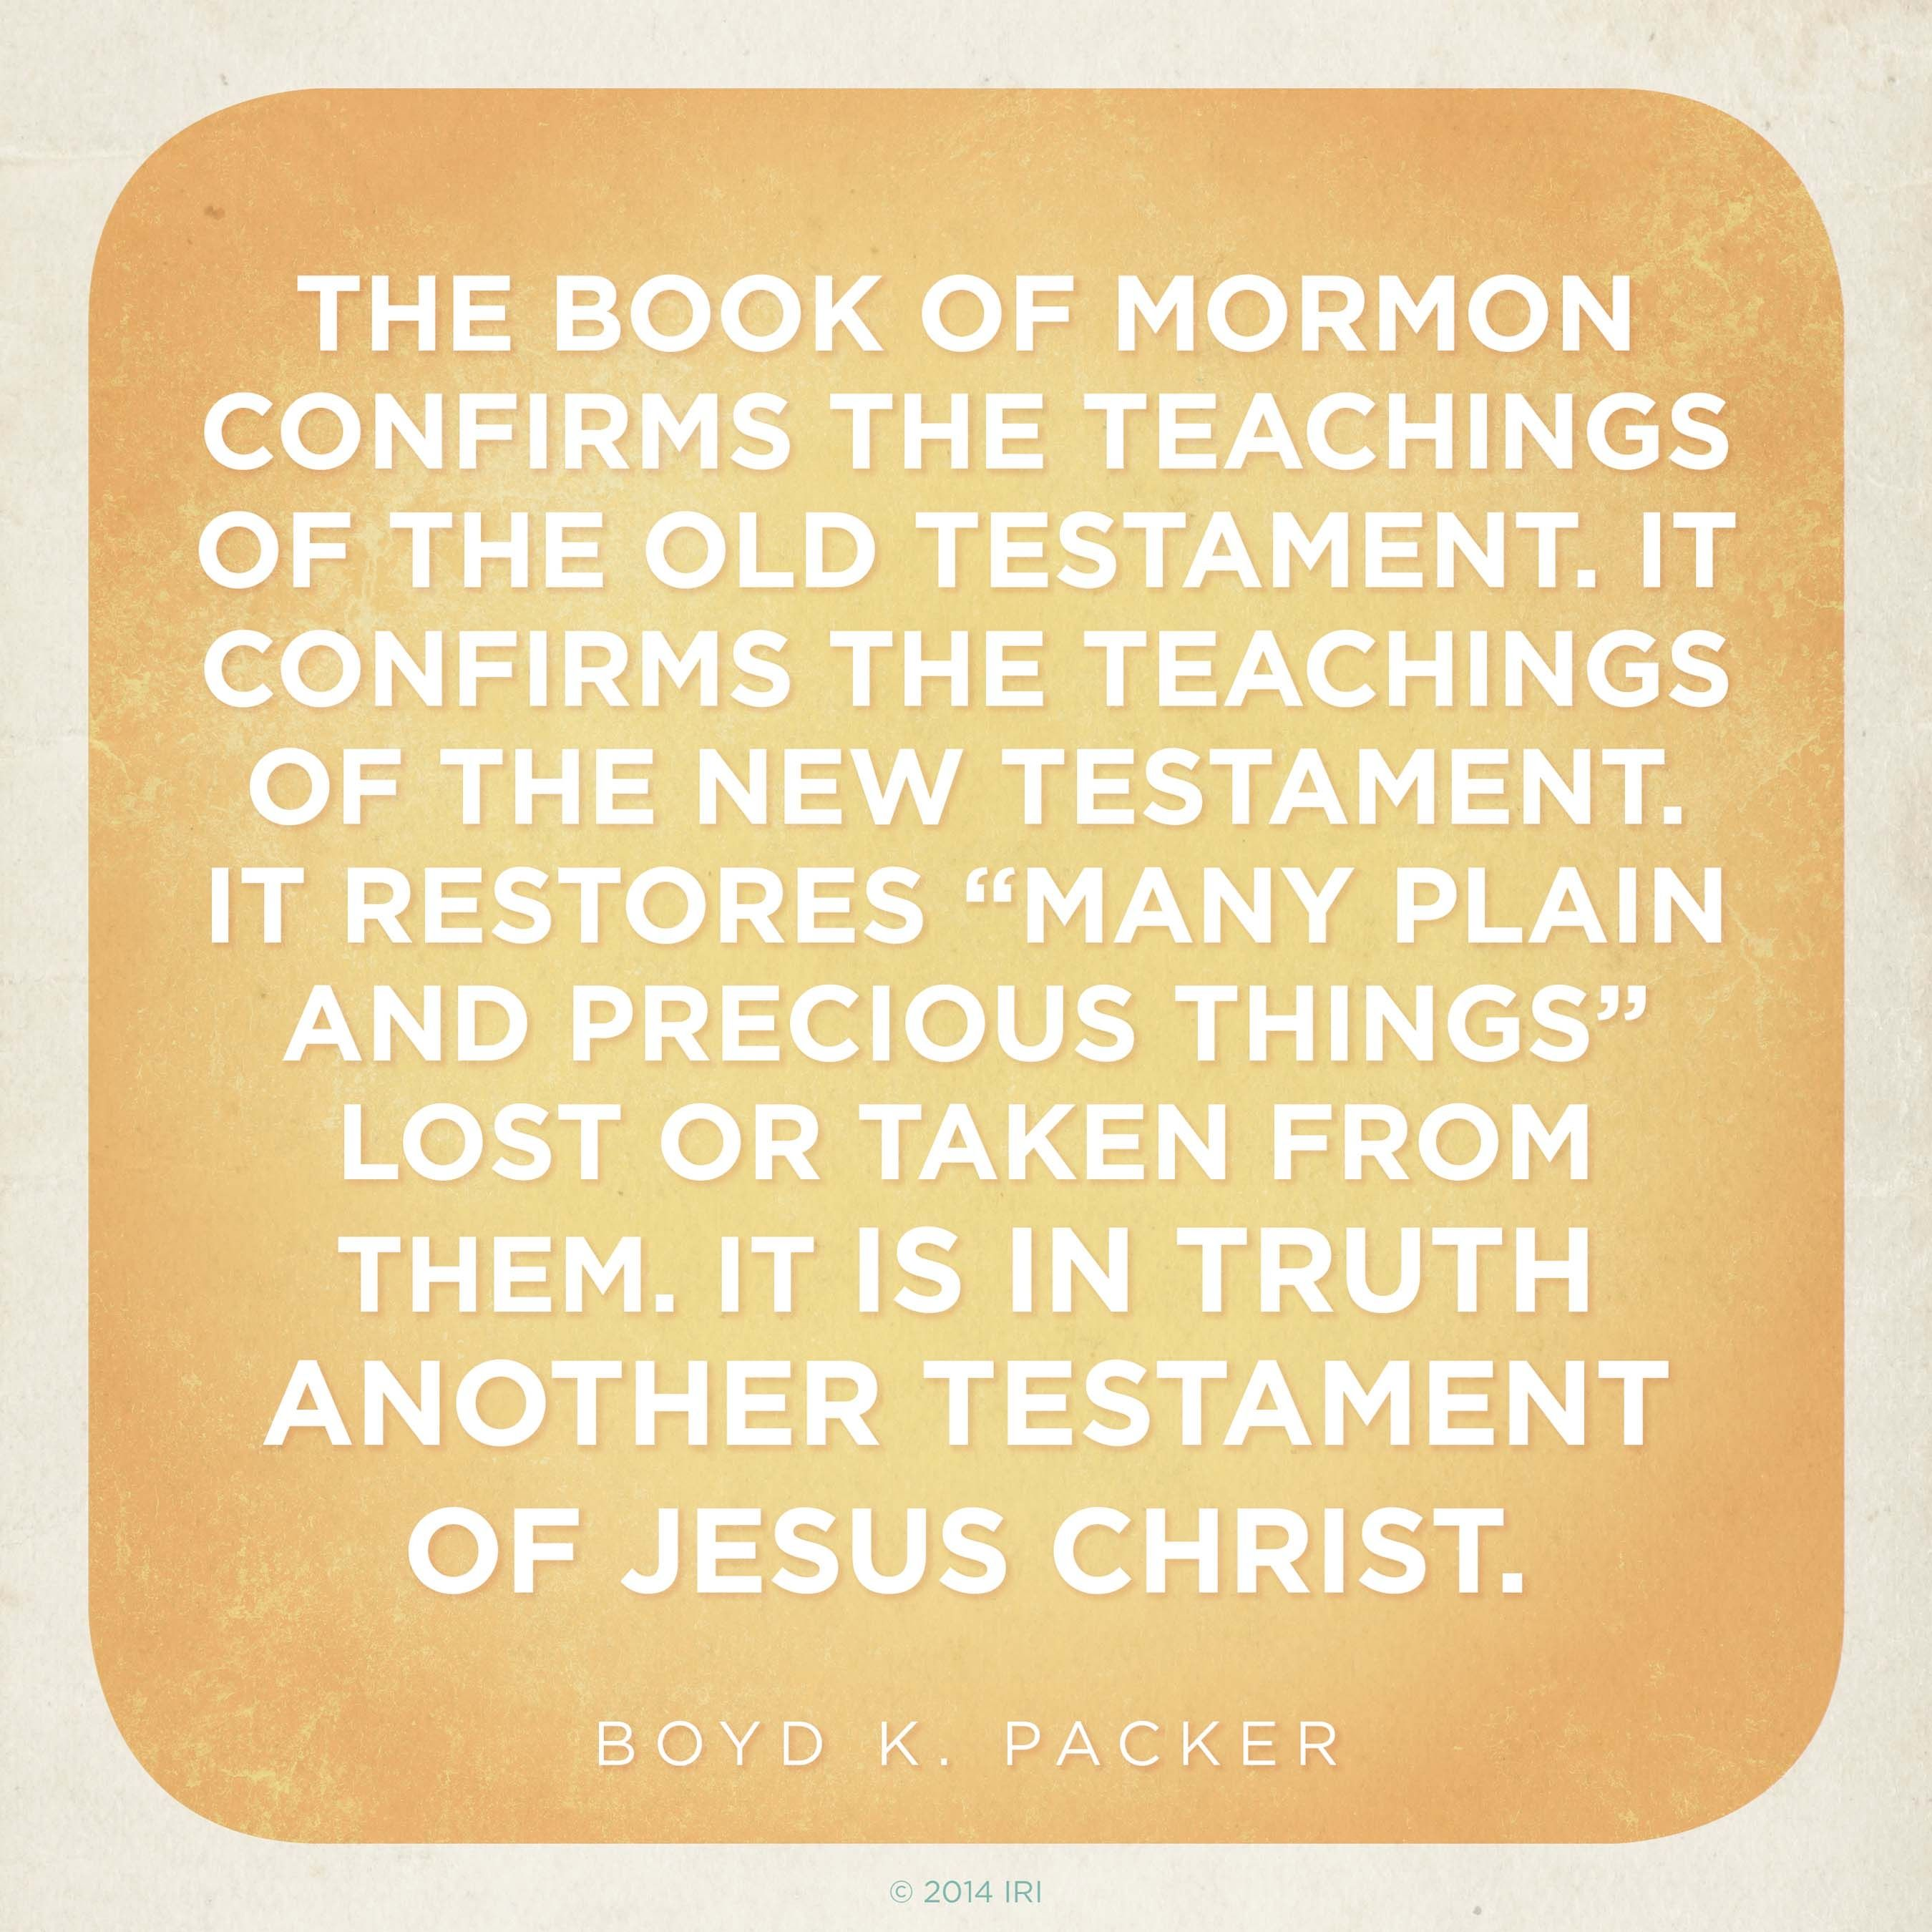 """""""The Book of Mormon confirms the teachings of the Old Testament. It confirms the teachings of the New Testament. It restores 'many plain and precious things' lost or taken from them. It is in truth another testament of Jesus Christ.""""—President Boyd K. Packer, """"The Book of Mormon: Another Testament of Jesus Christ—Plain and Precious Things"""""""